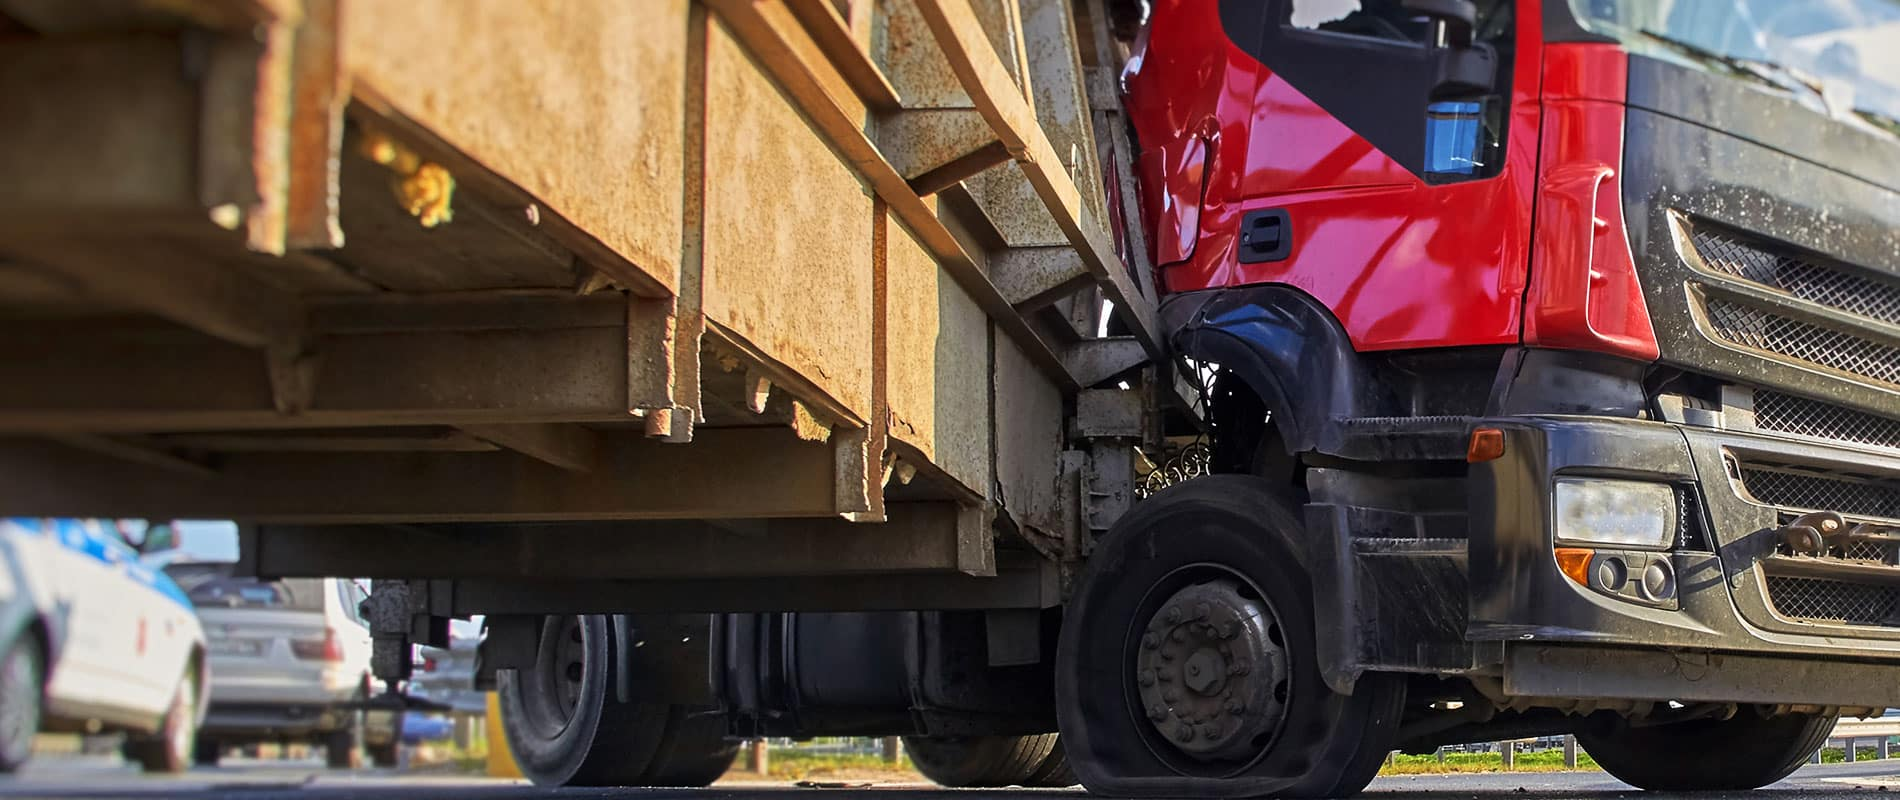 TEXAS COMMERCIAL VEHICLE ACCIDENT